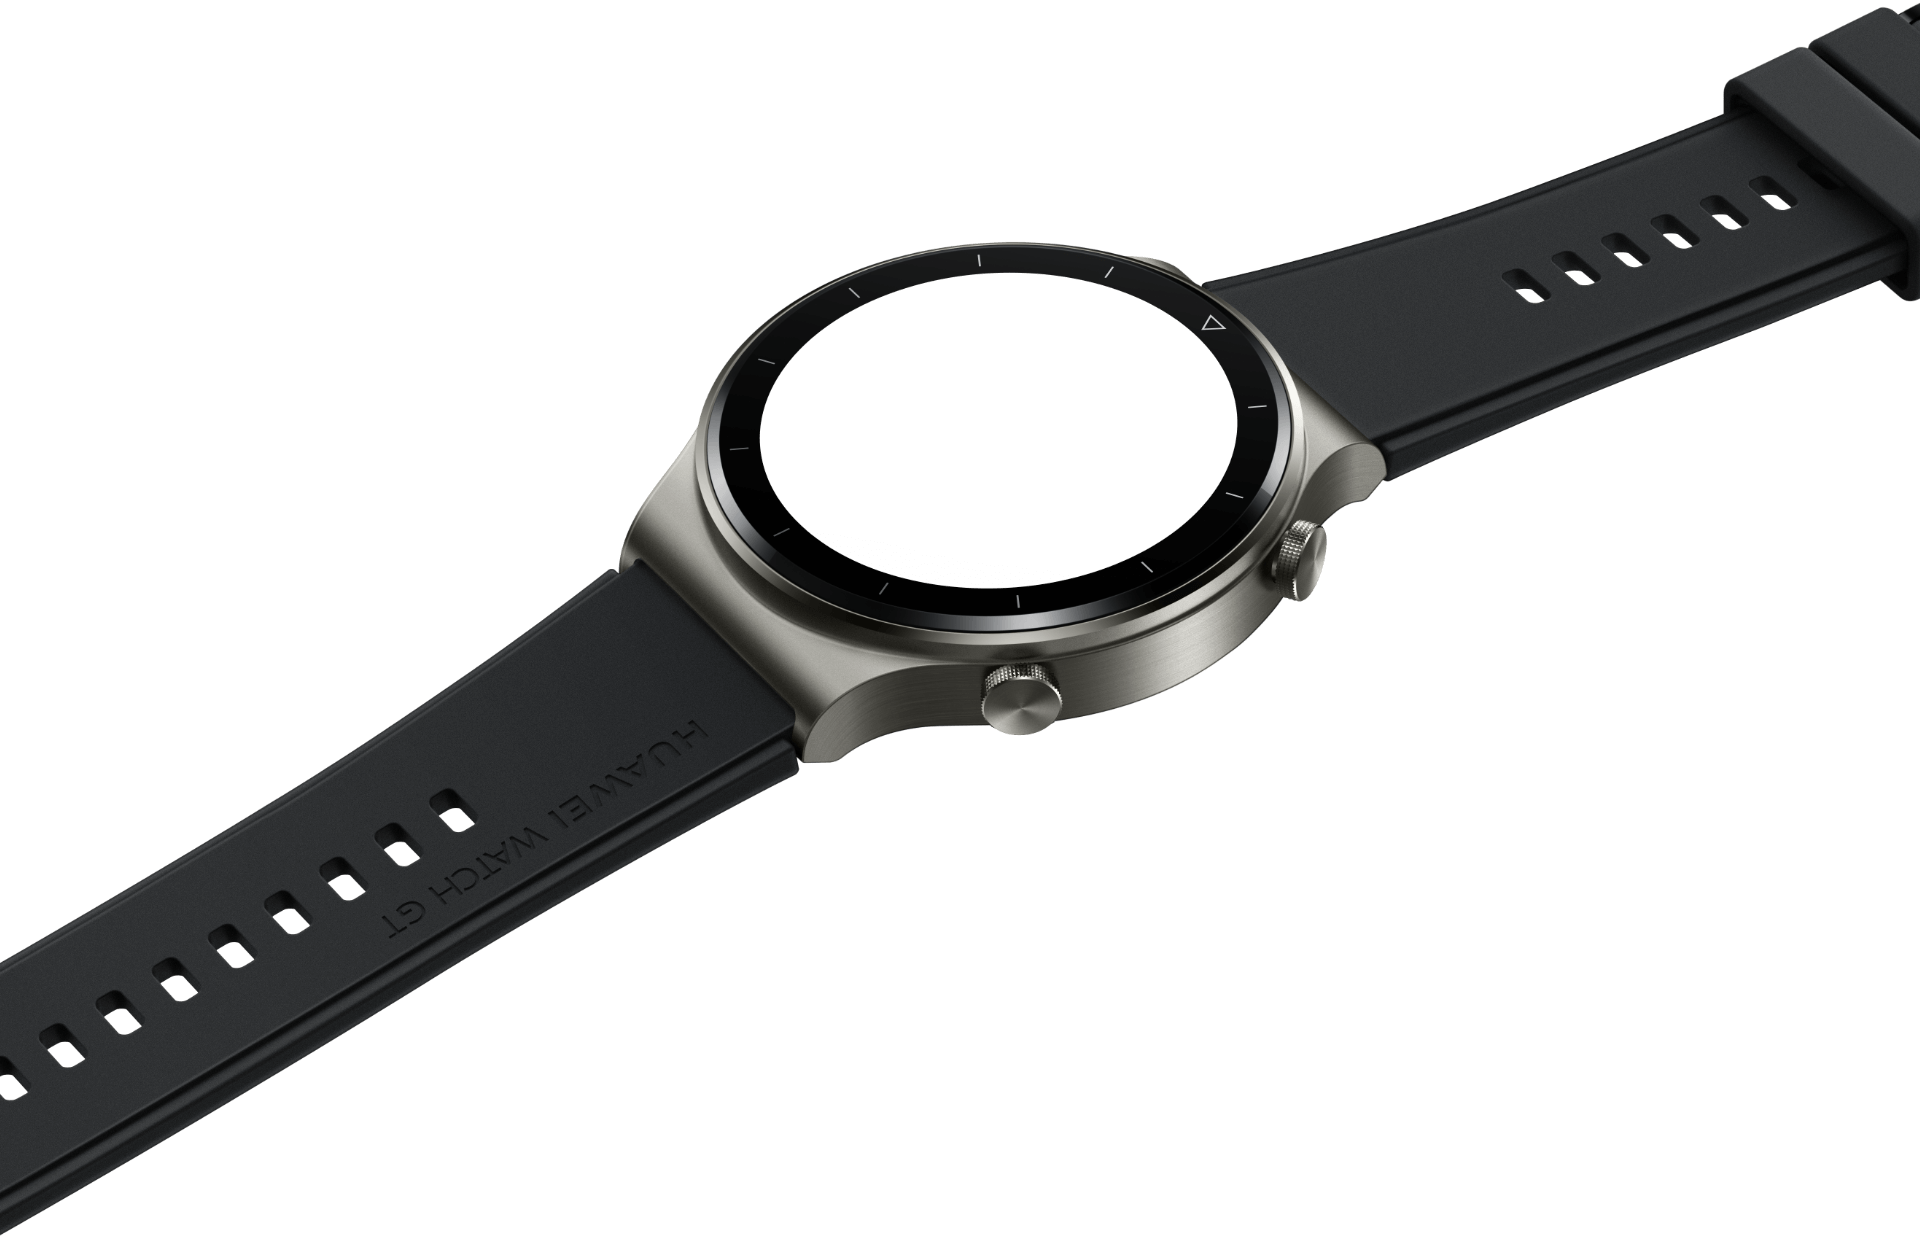 HUAWEI WATCH GT 2 Pro huawei wireless charging